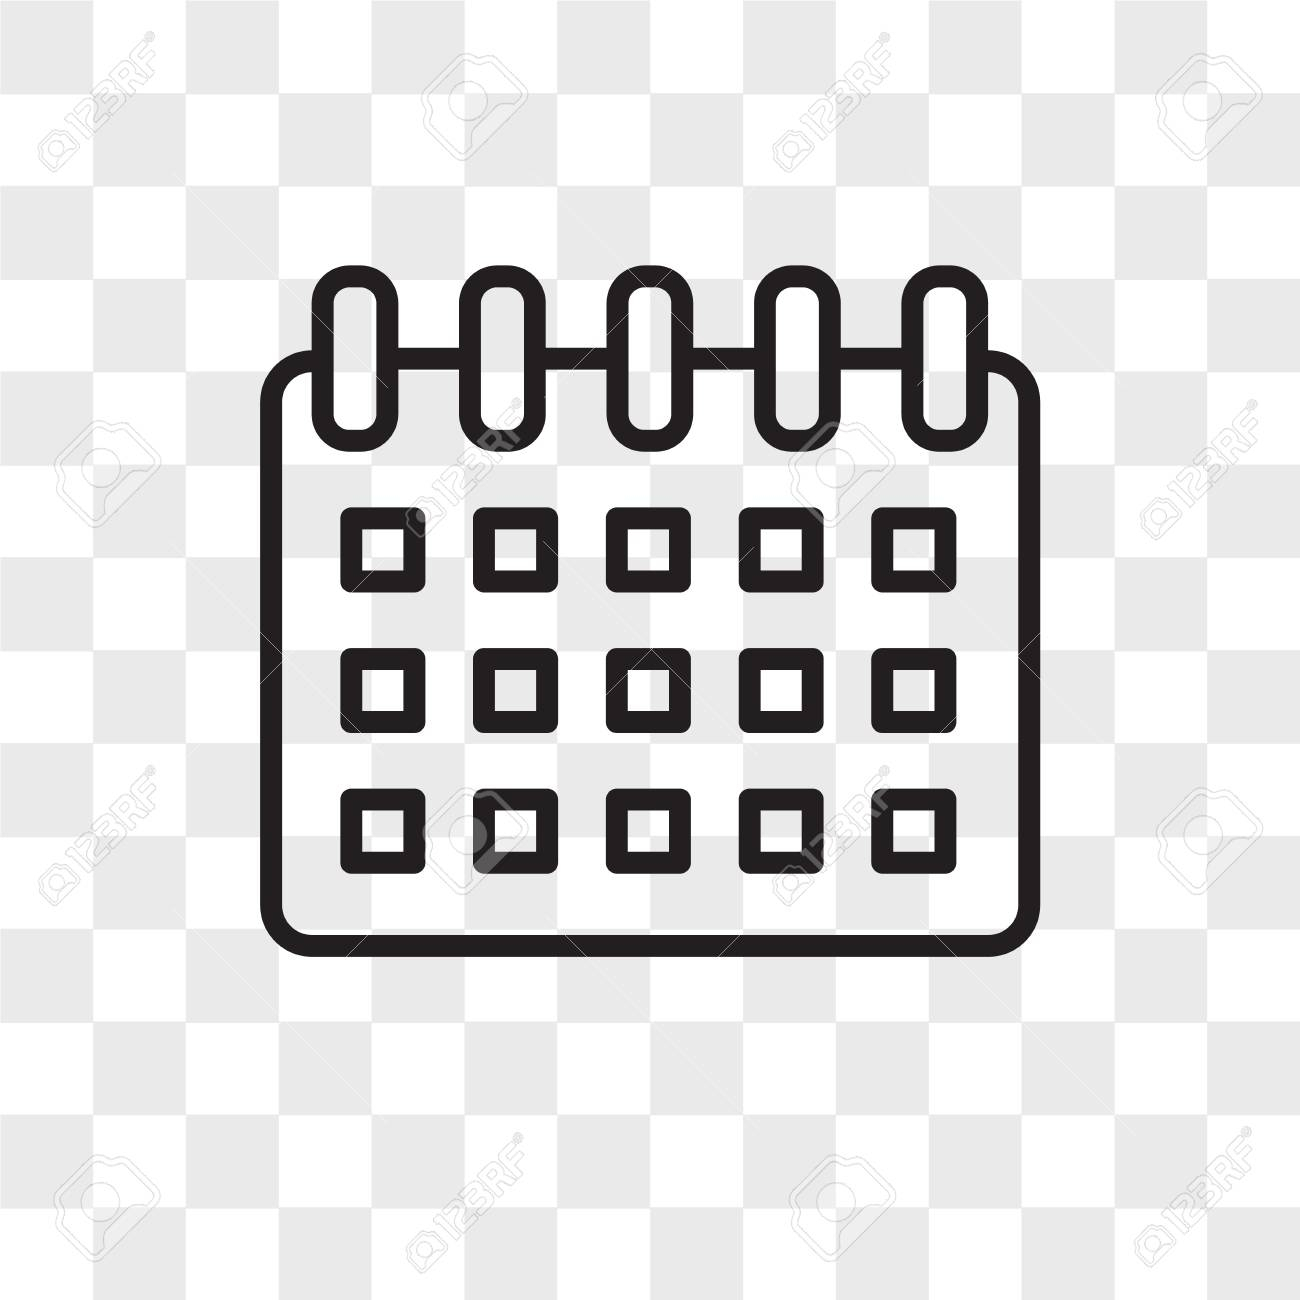 Calendar Vector Icon Isolated On Transparent Background, Calendar.. regarding Icon Calendar Vector